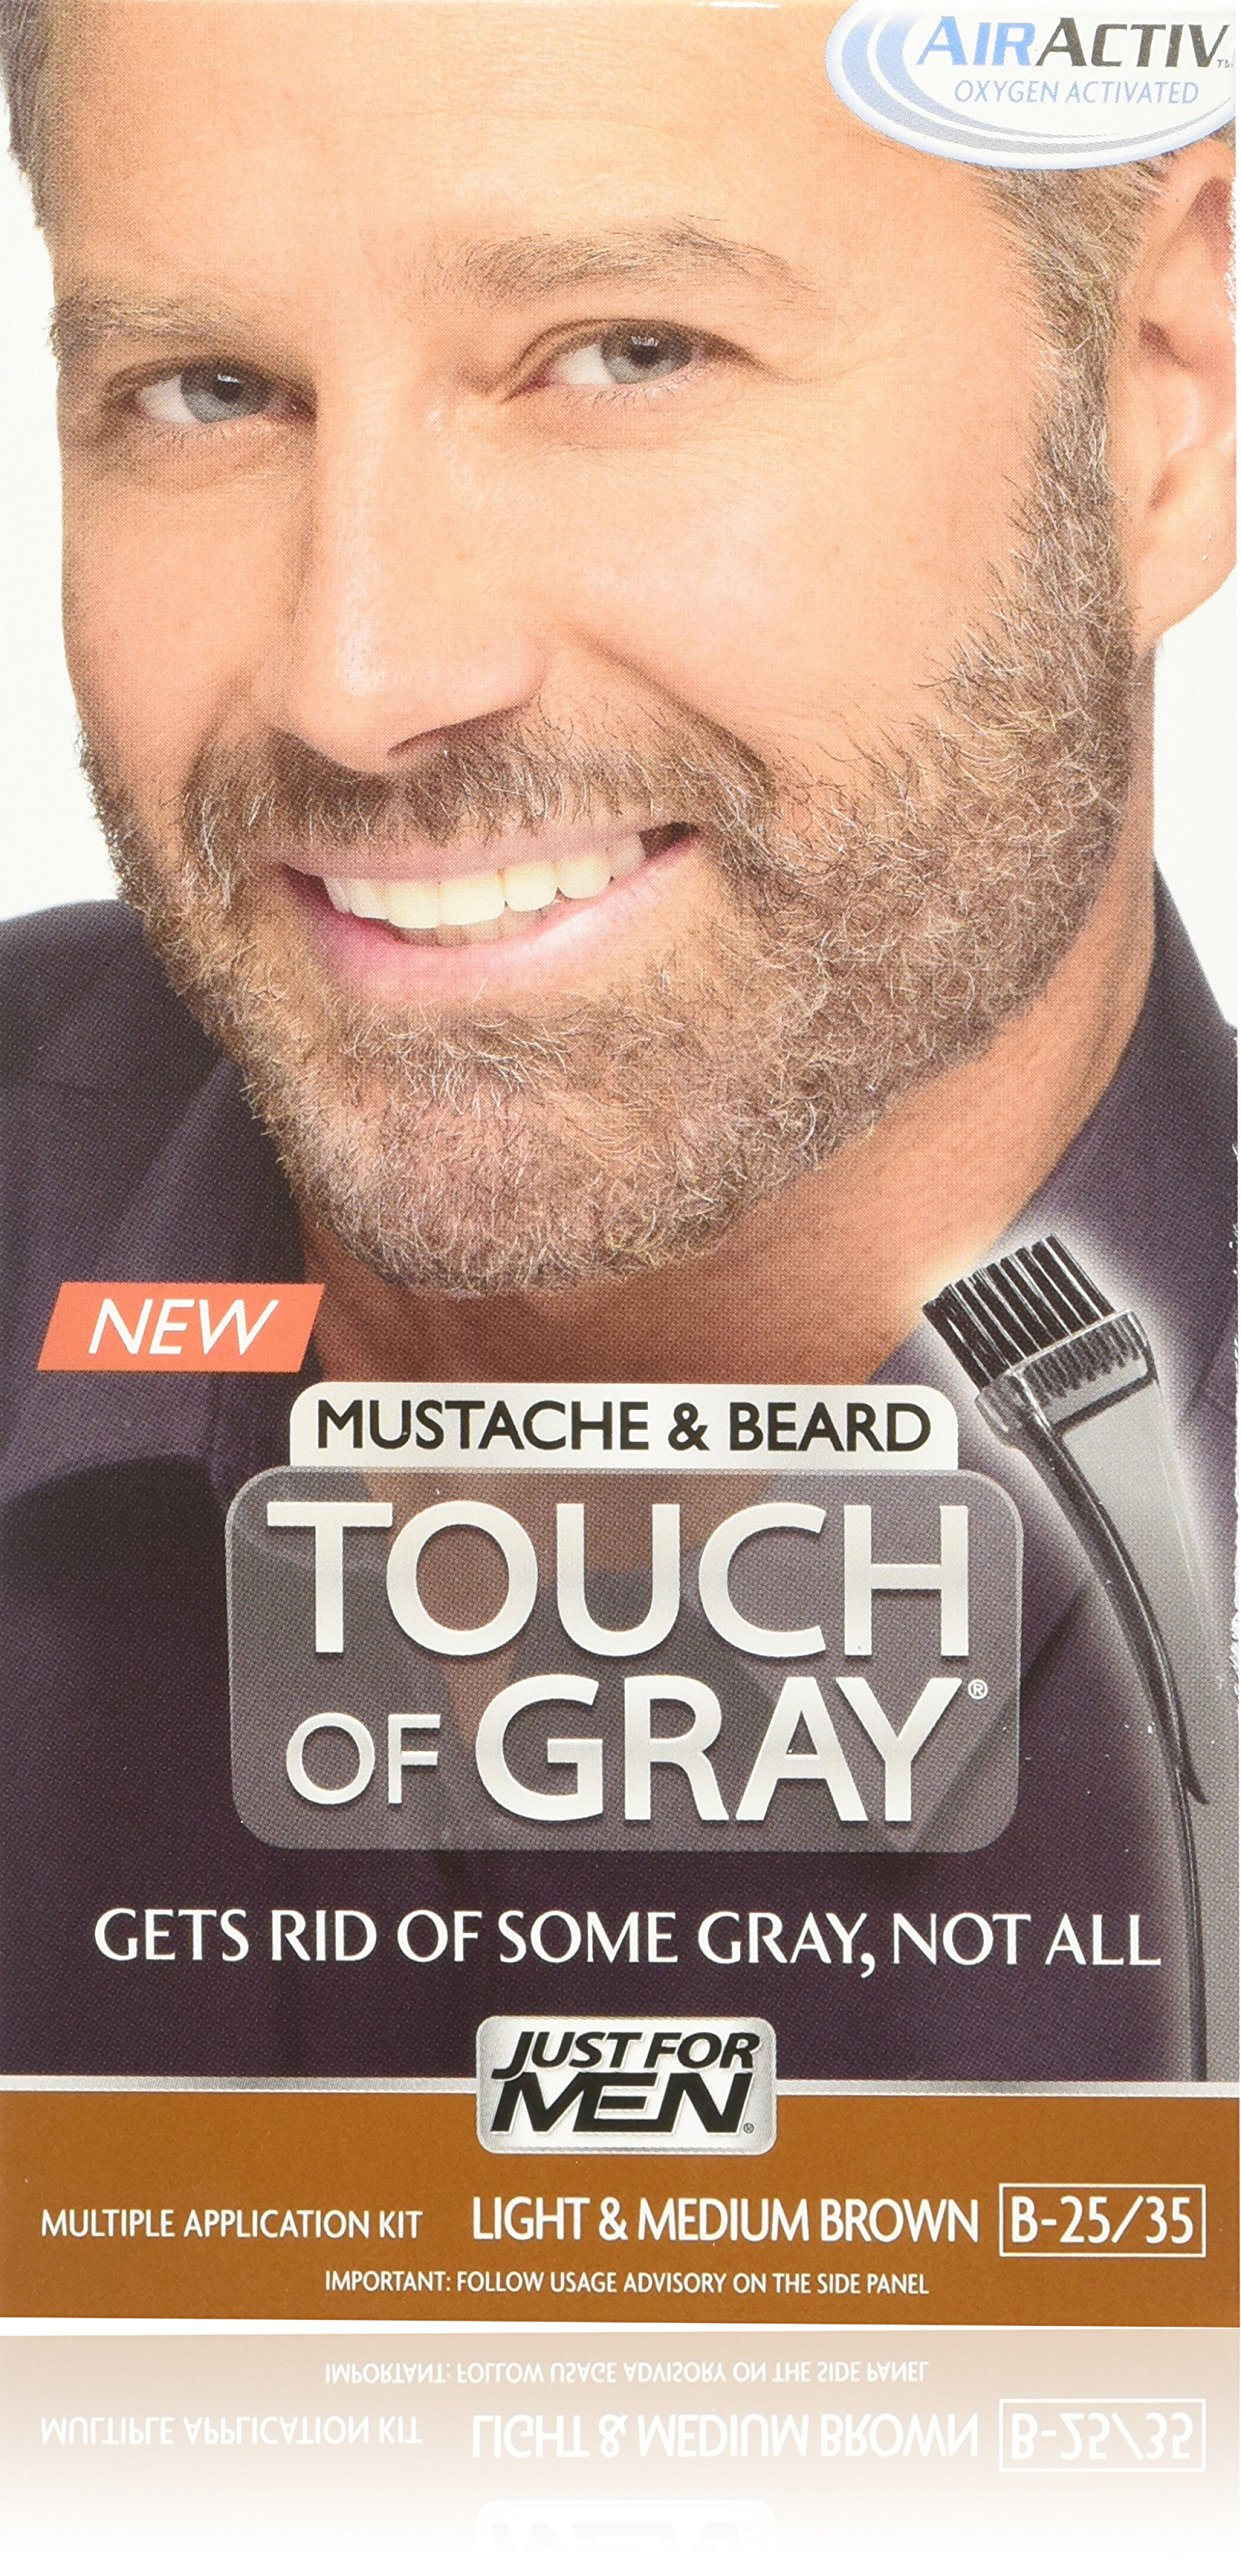 Amazon.com : JUST FOR MEN Touch of Gray Hair Color, Mustache & Beard ...